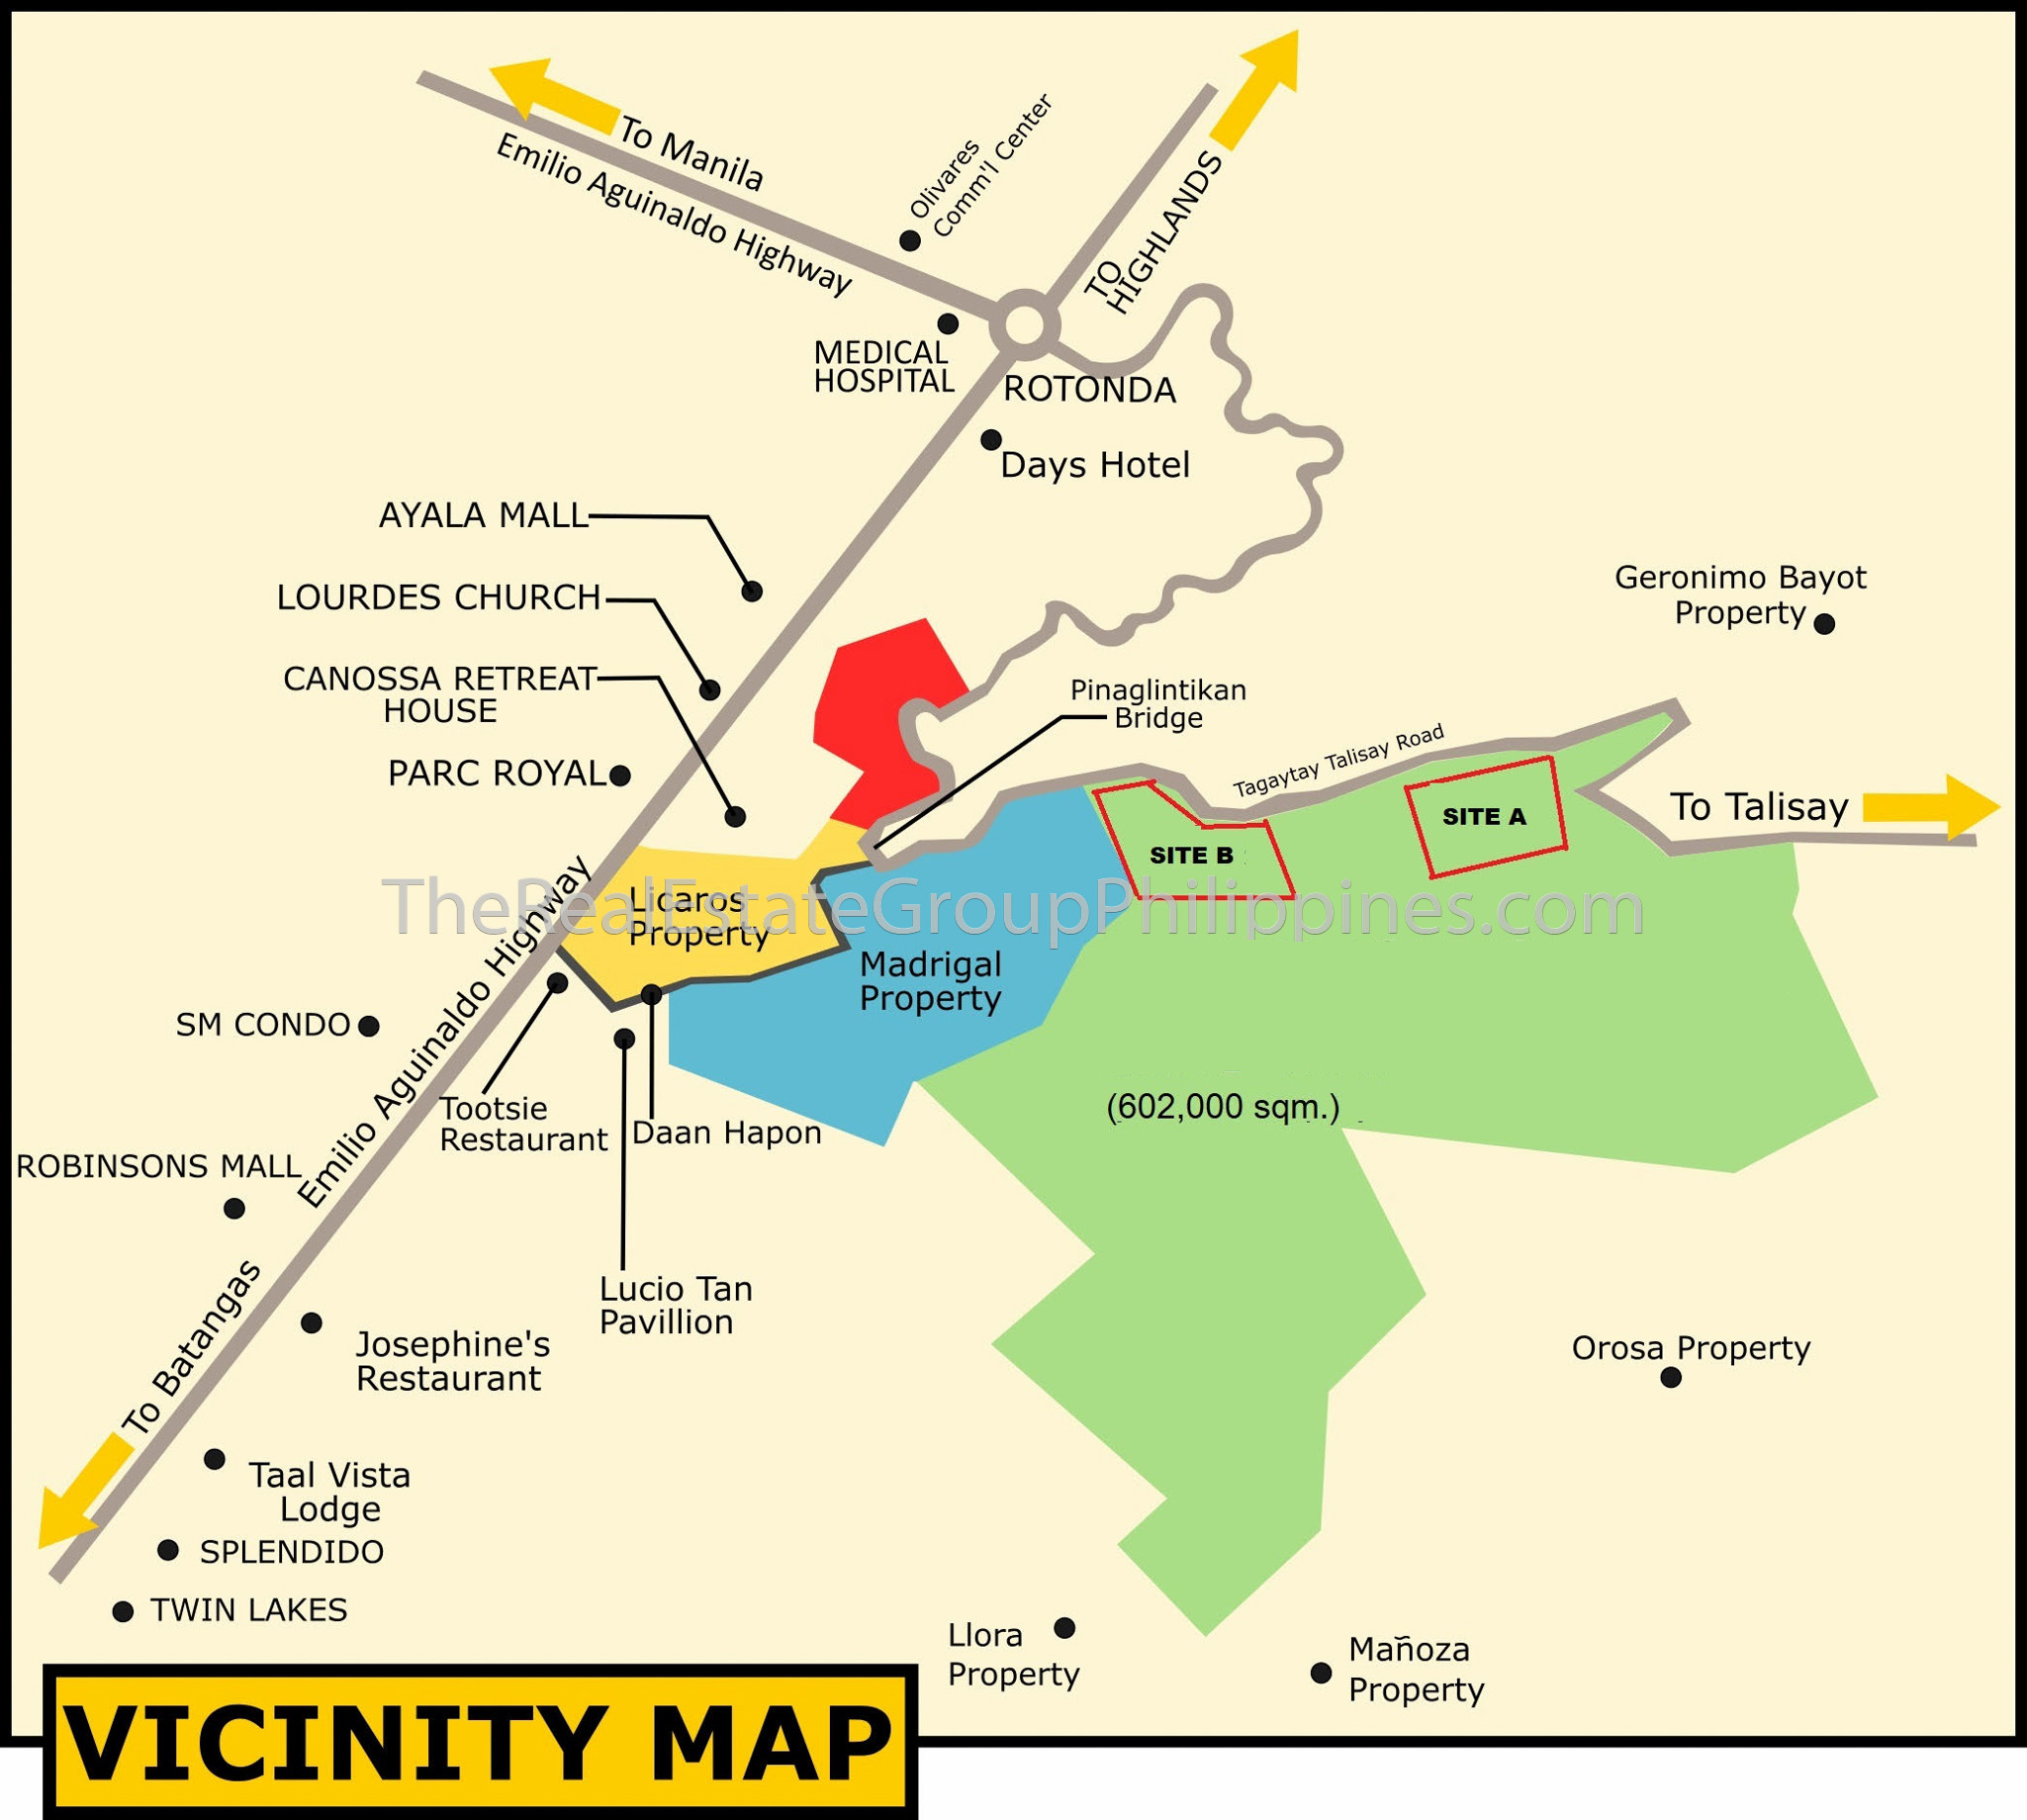 60 Hectares Vacant Lot Land For Sale Tagaytay Vicinity Map